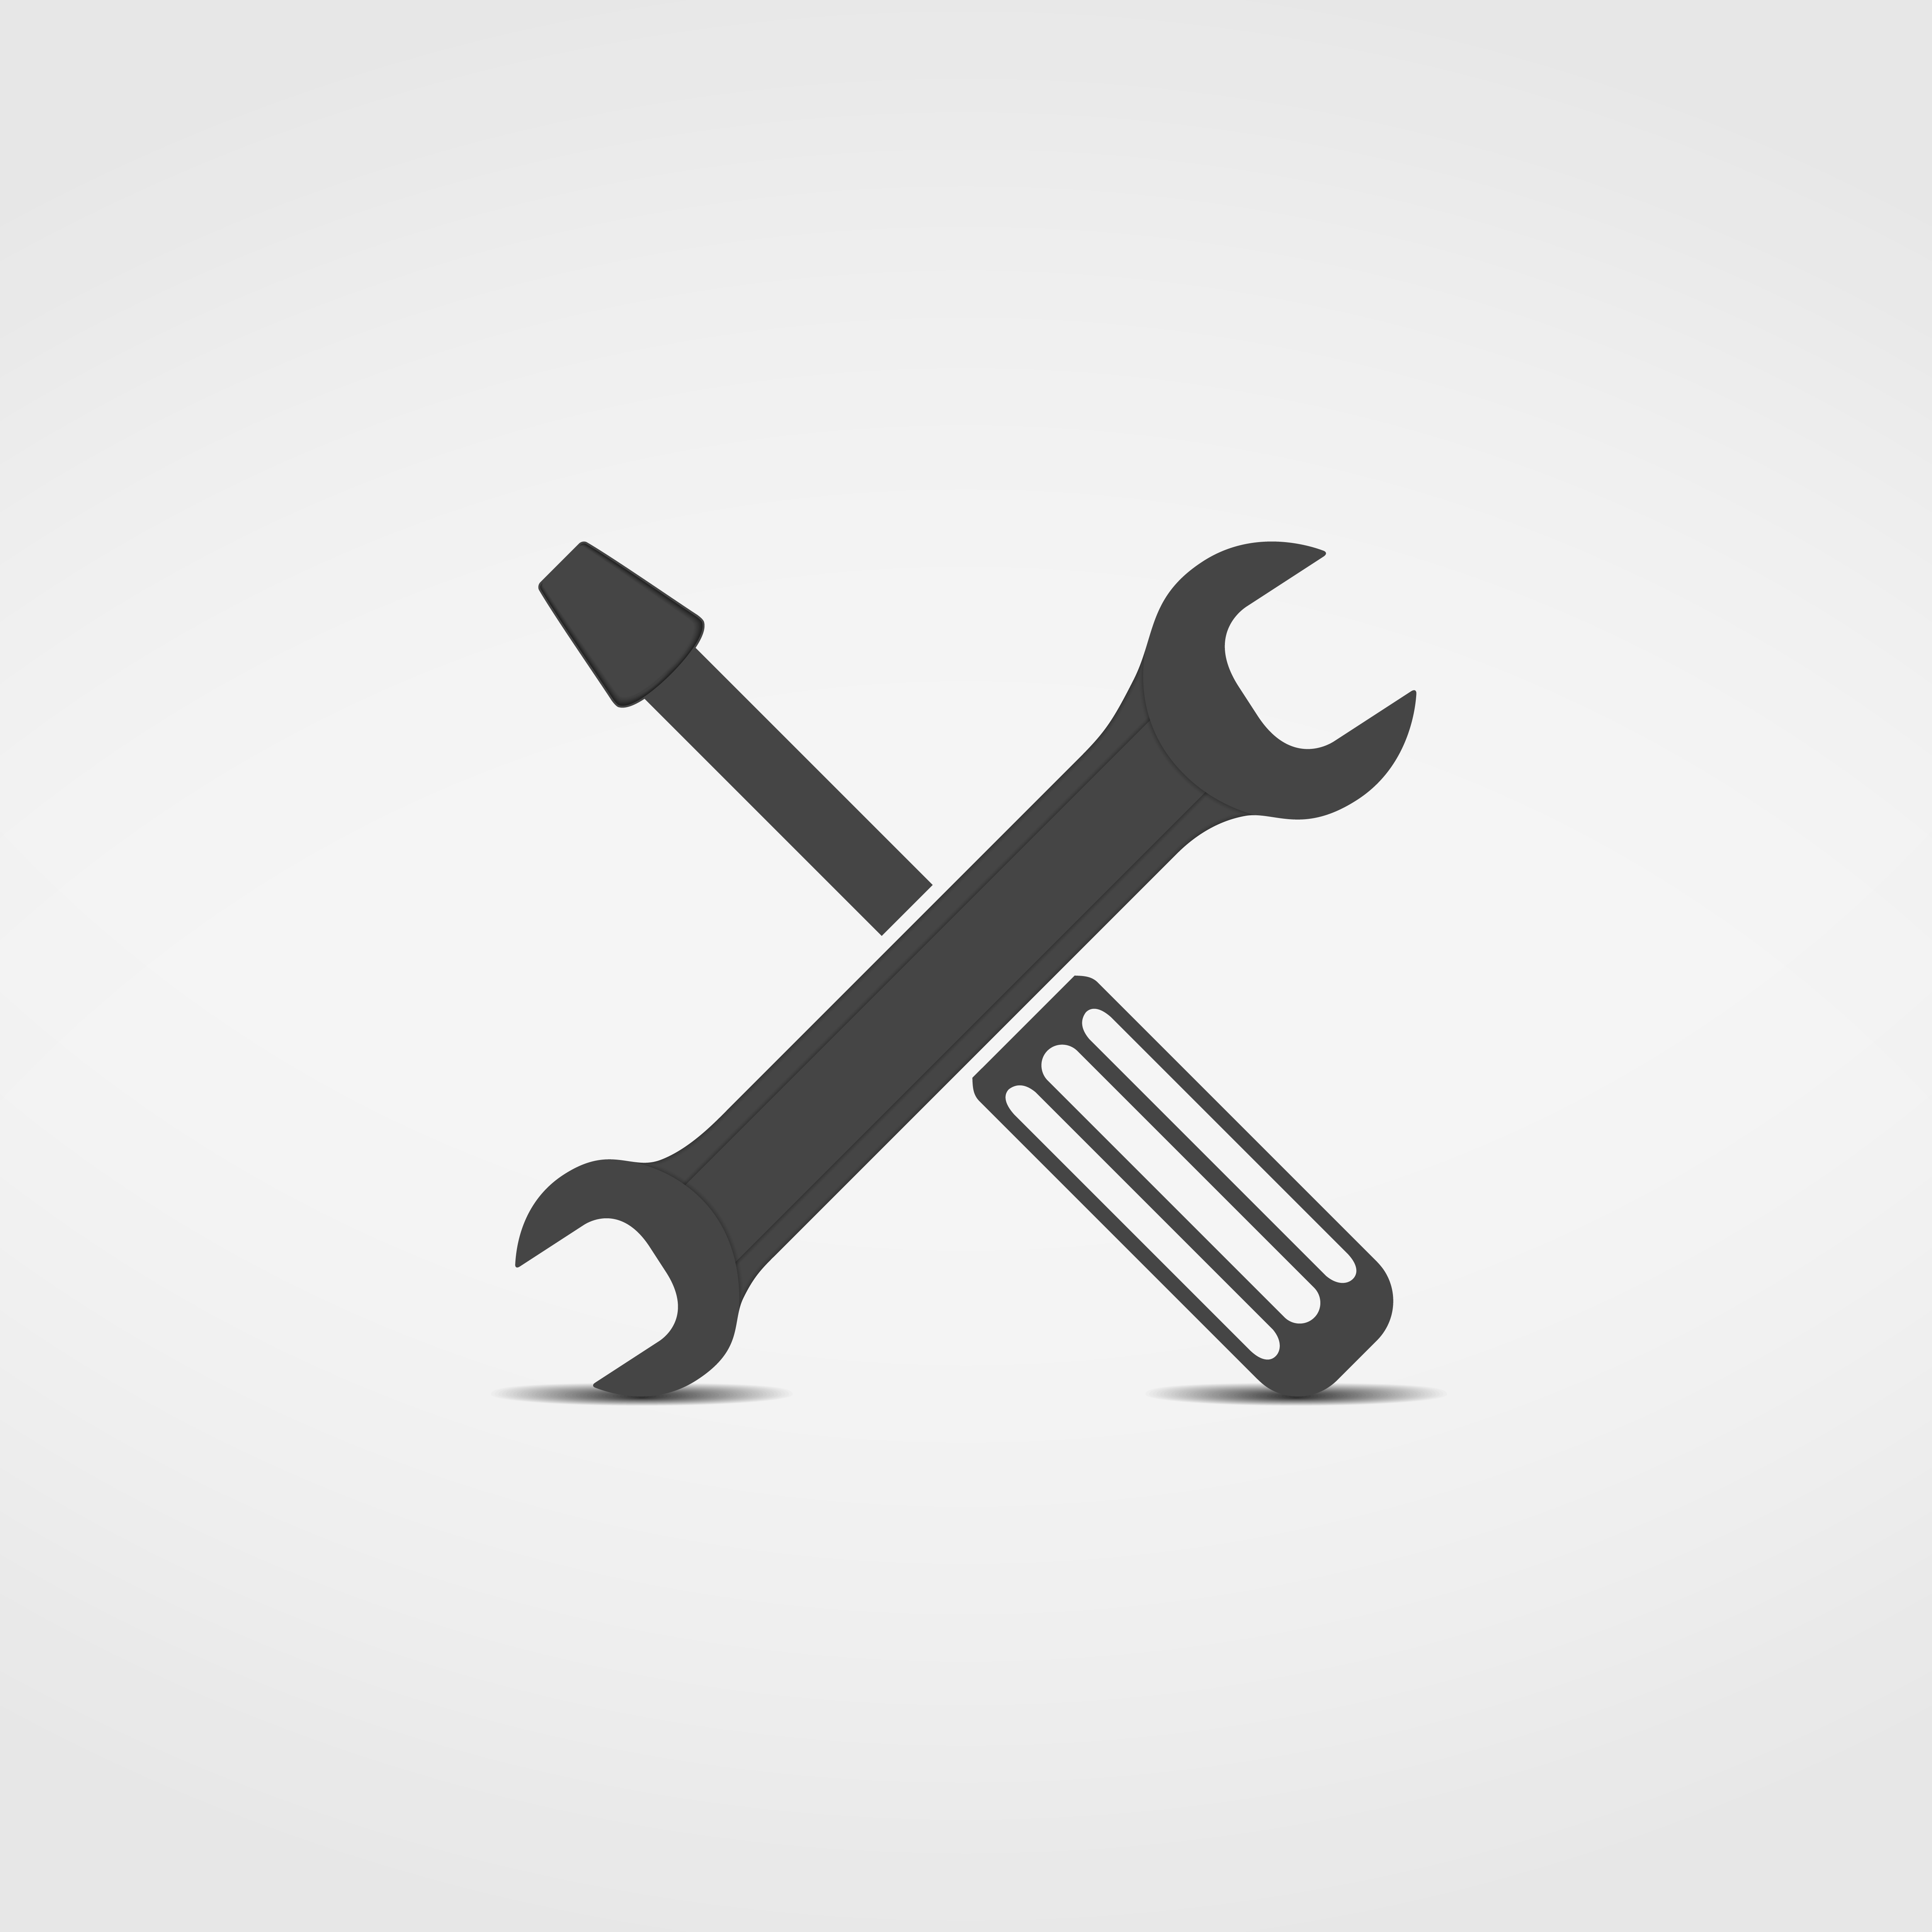 Screwdriver and wrench icon, vector eps10 illustration